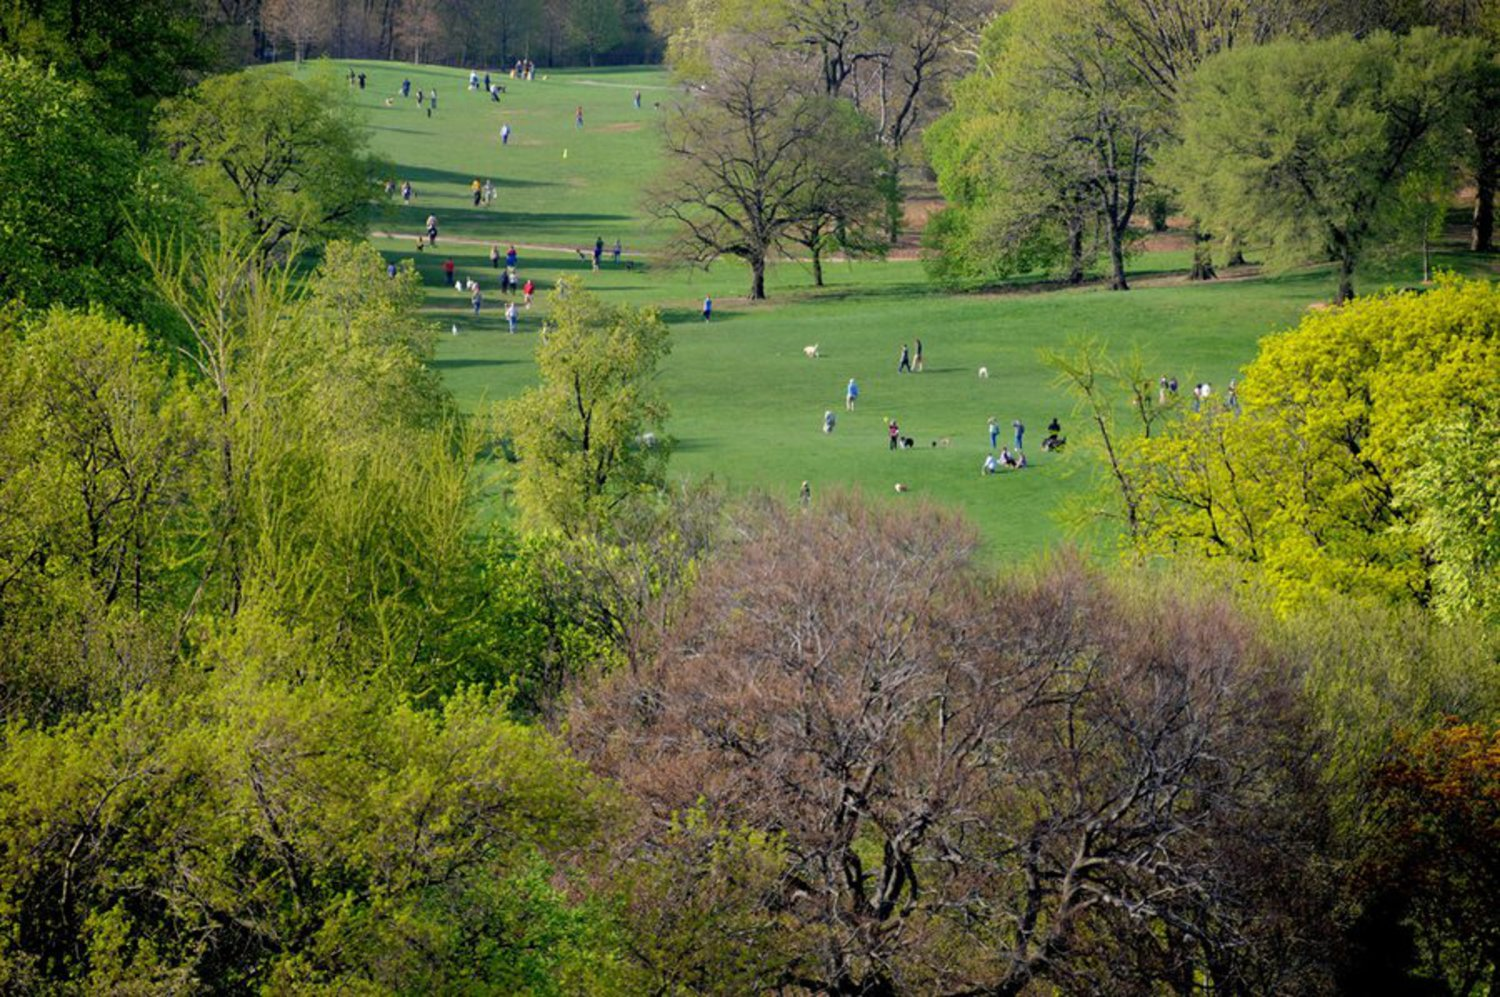 Prospect Park, Brooklyn, New York